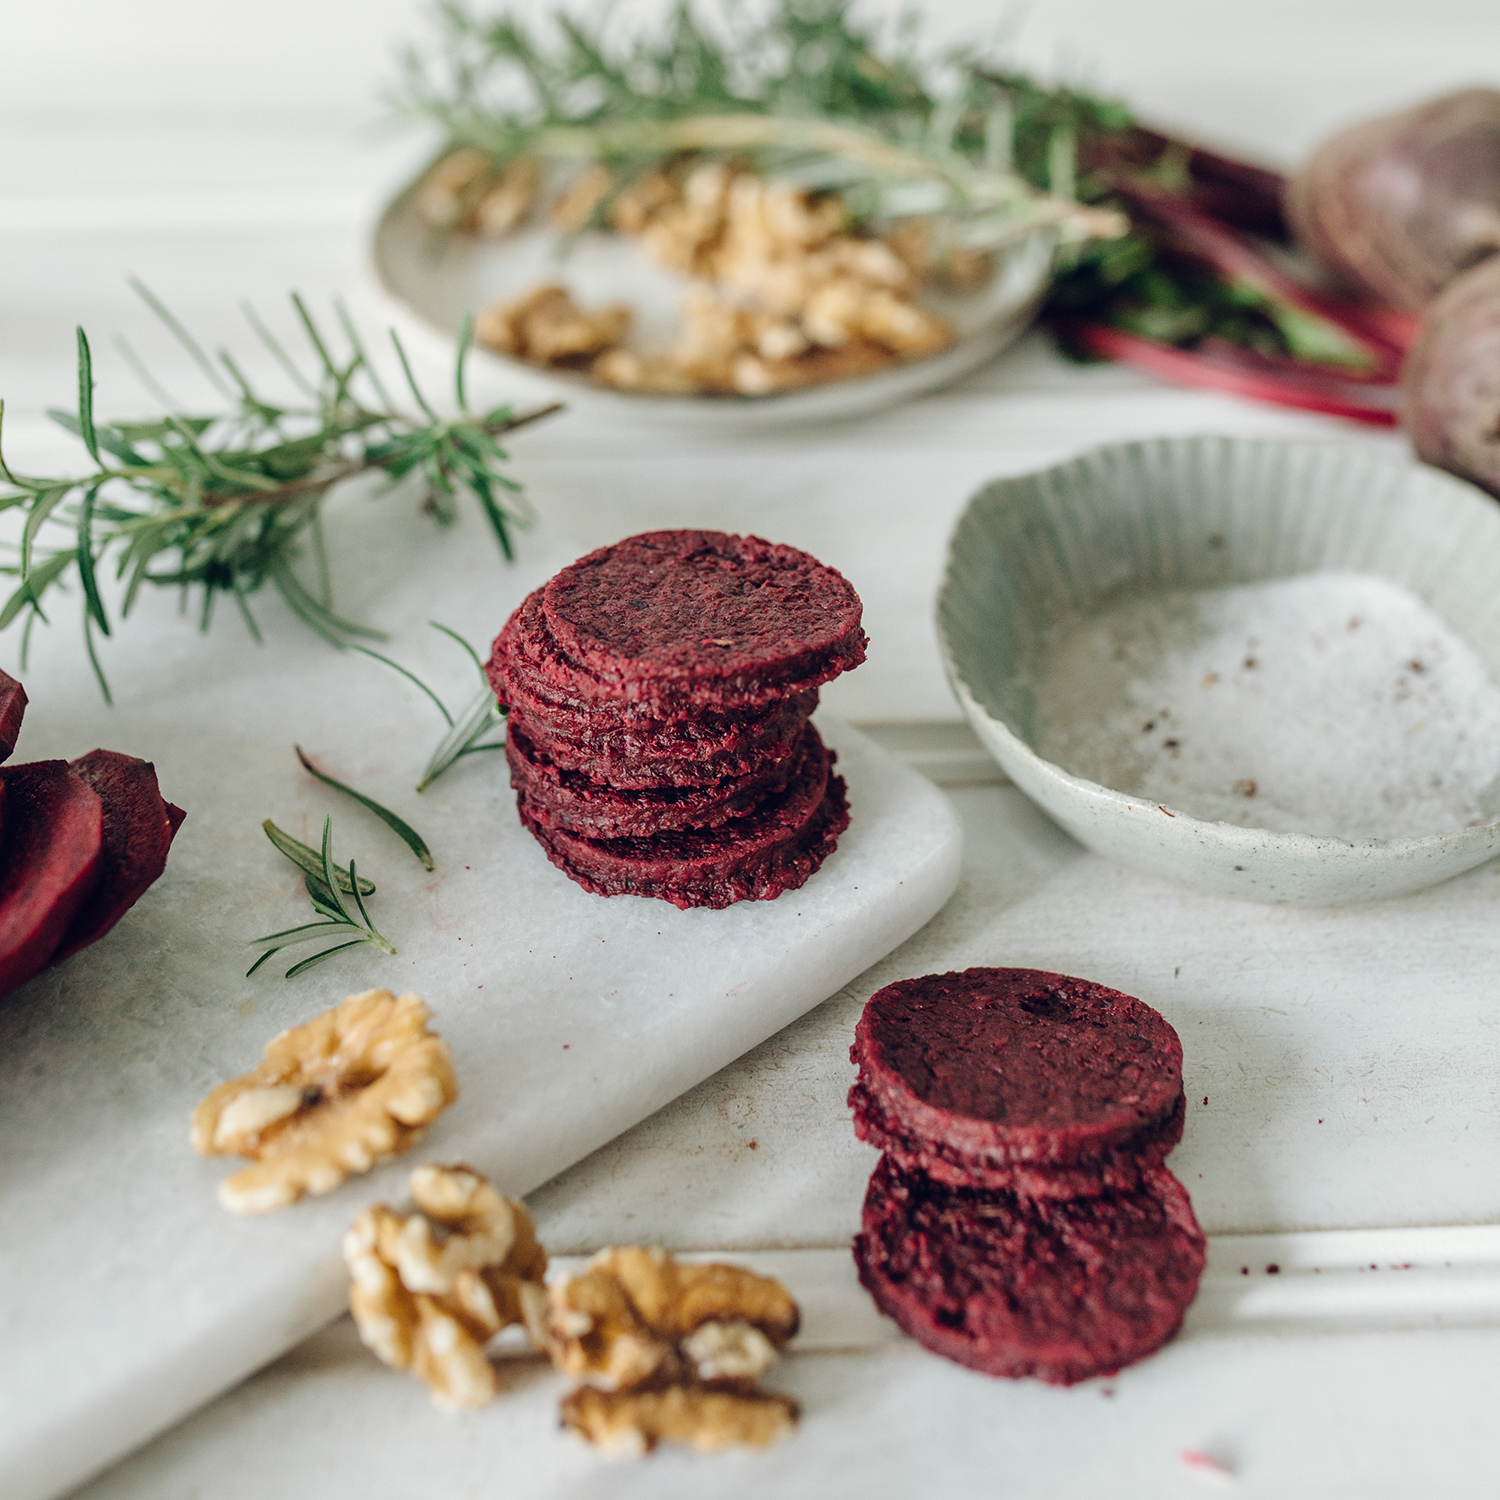 Made with farm fresh beetroots, walnuts and a hint of rosemary.